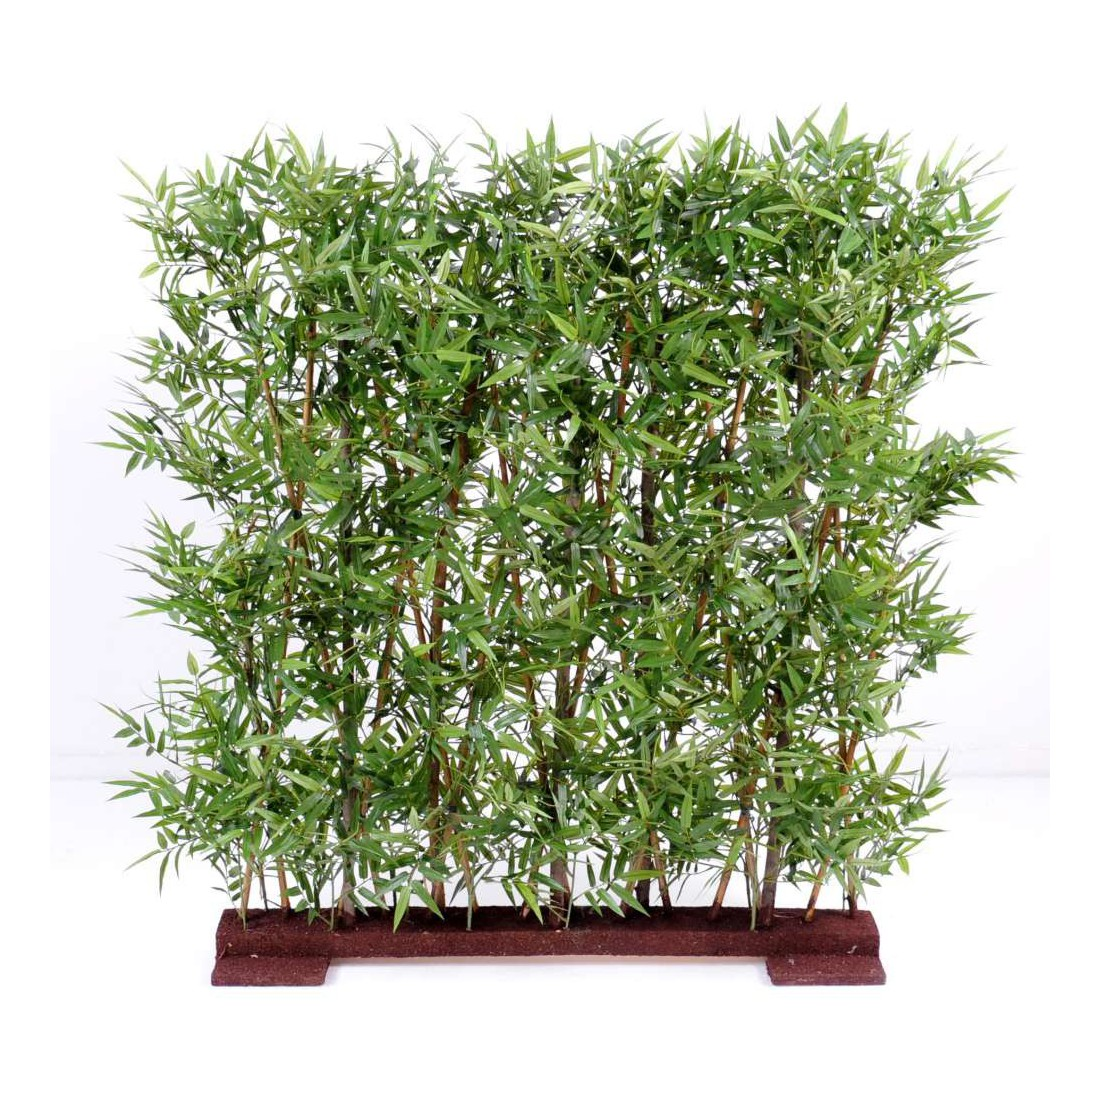 Topiaires artificiels haies artificielles artificielles for Plantes bambou exterieur en pot